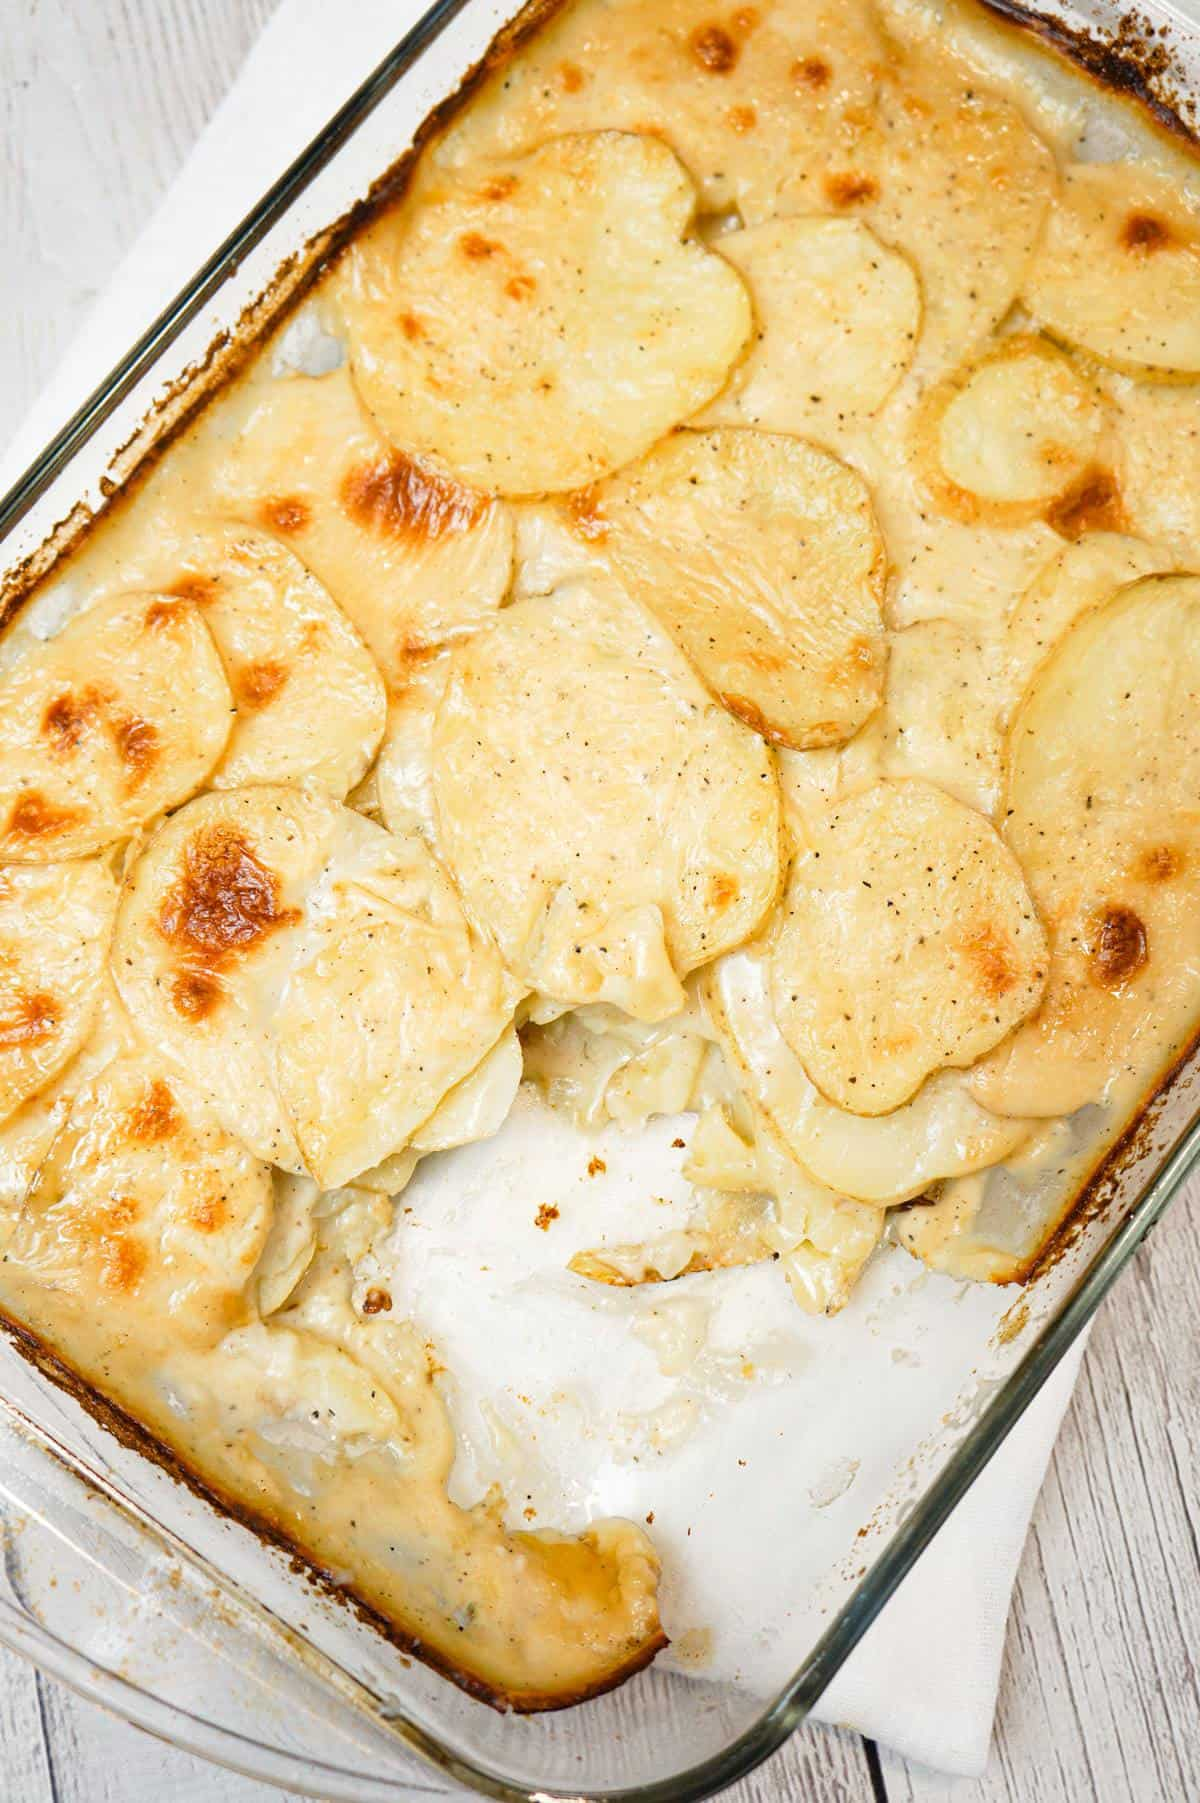 Scalloped Potatoes are a delicious side dish recipe made with thinly sliced potatoes layered with a creamy onion sauce and baked in the oven.